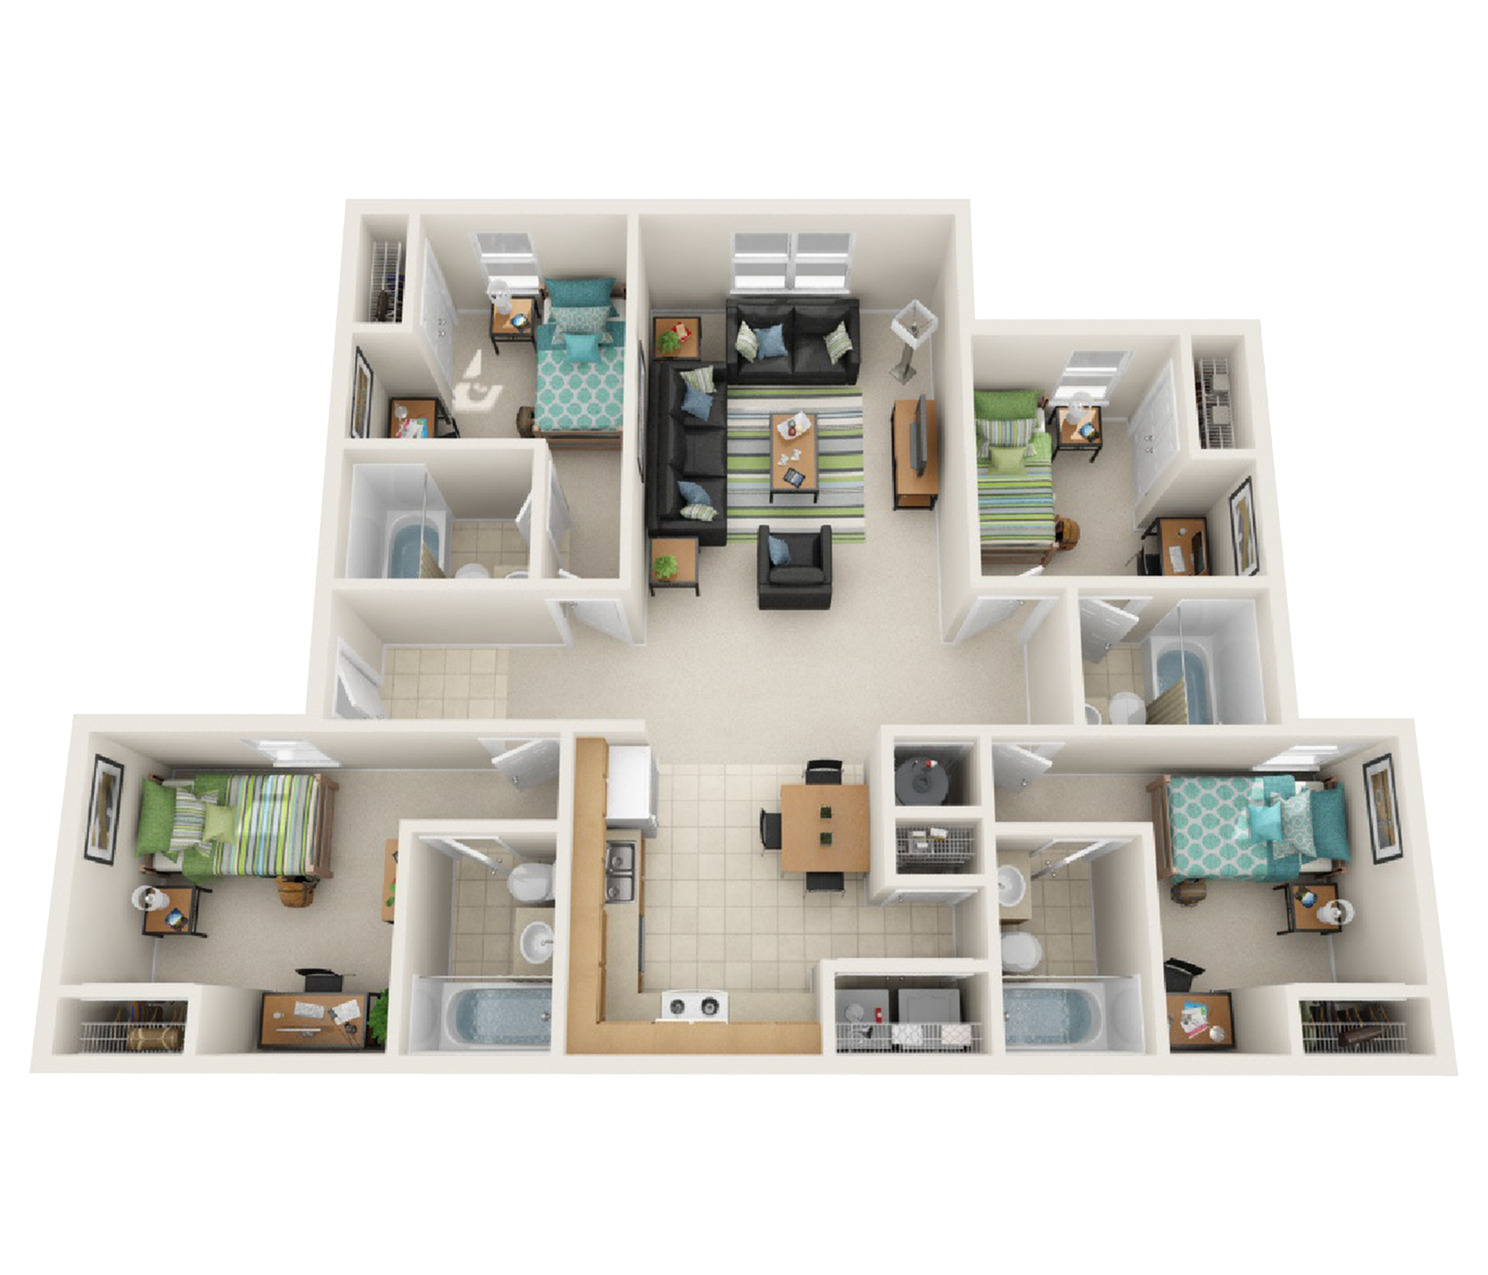 4 Bedroom Standard Floor Plan